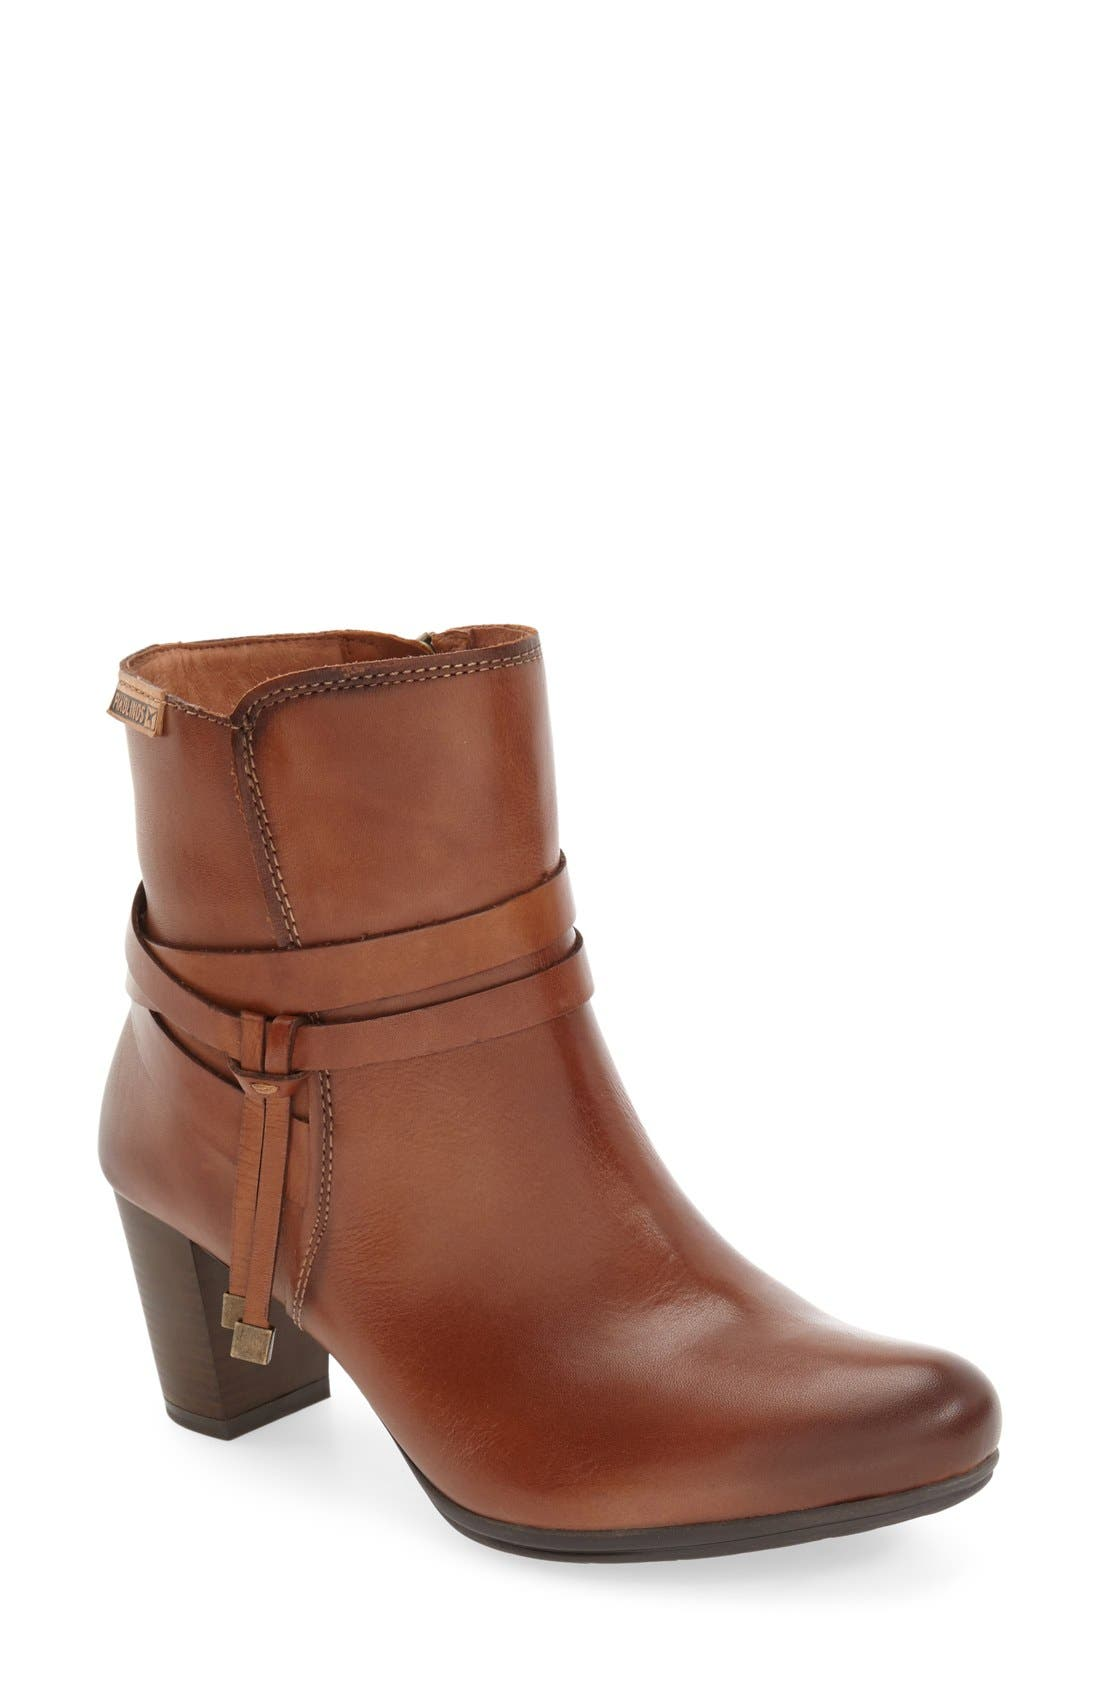 'Verona' Bootie,                         Main,                         color, CUERO LEATHER